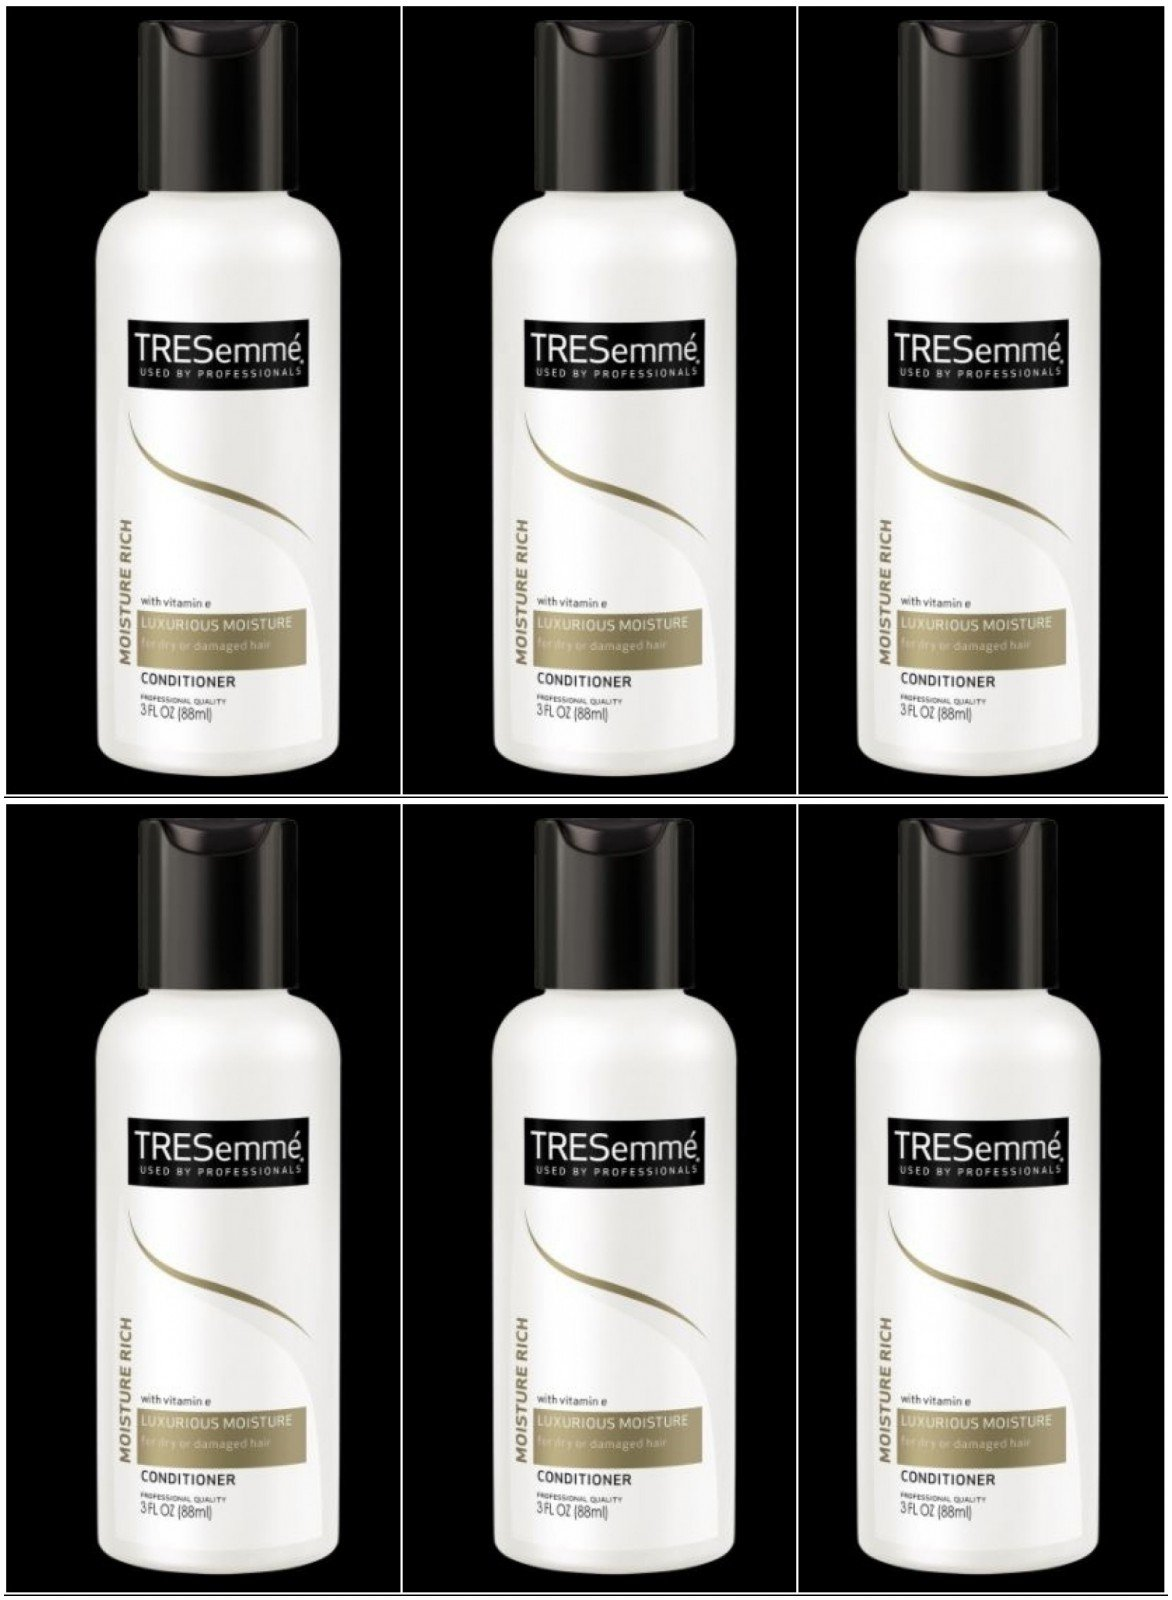 TRESemme Moisture Rich Conditioner 3 Oz Travel Size (Pack of 6)